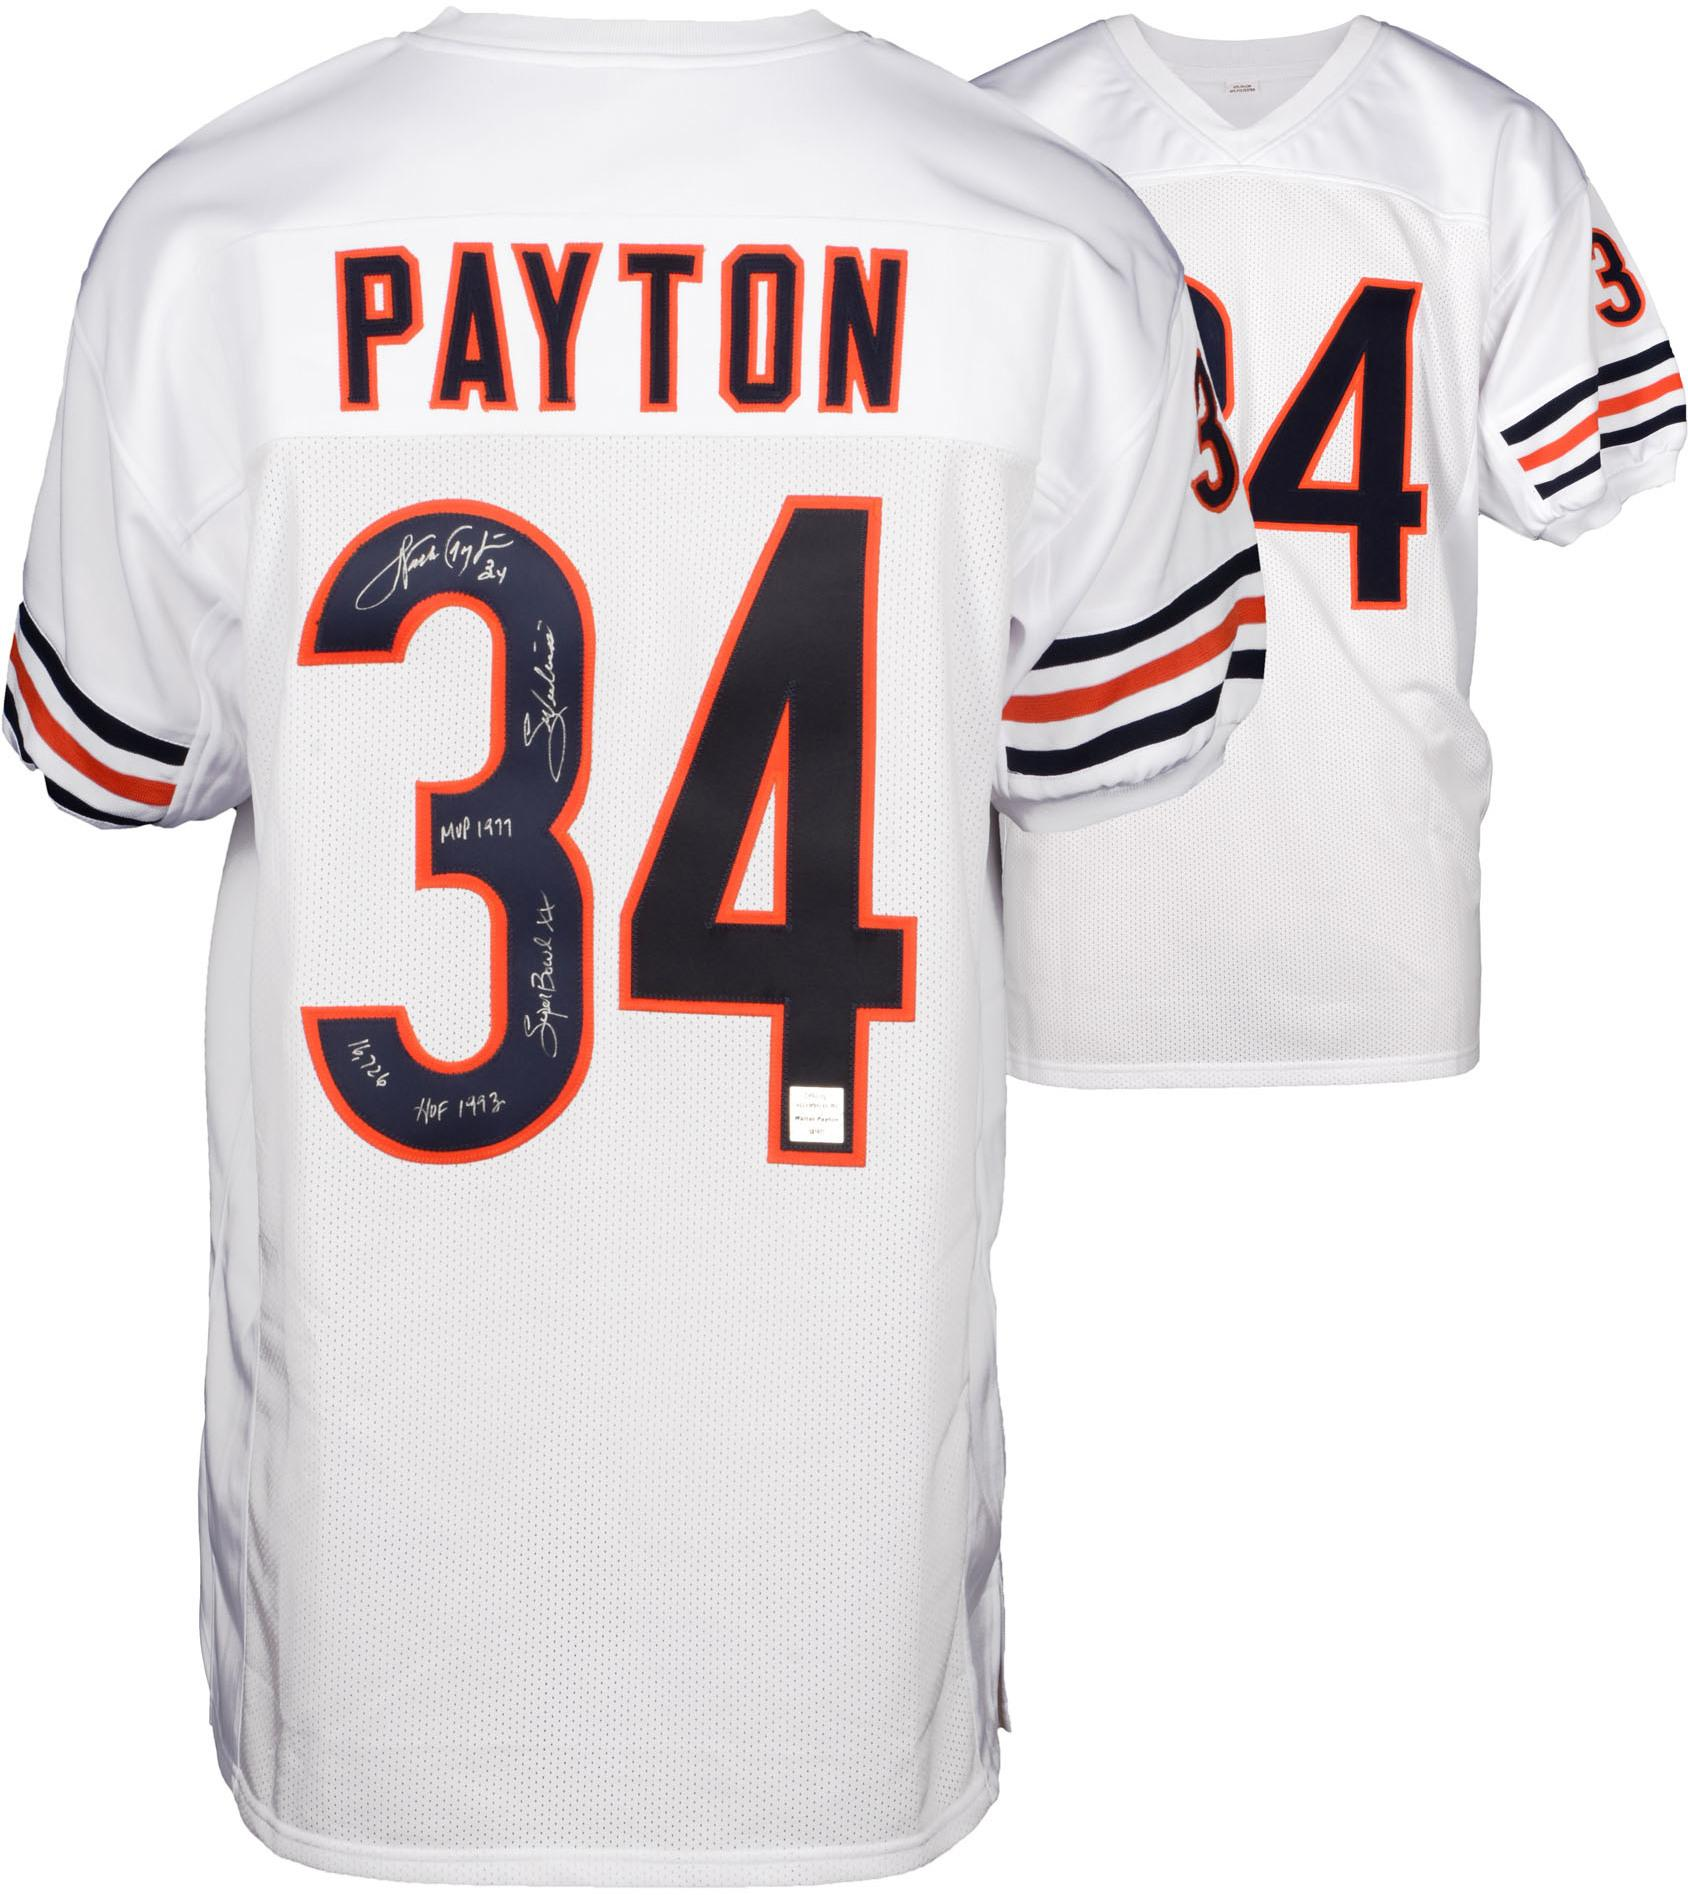 Walter Payton Chicago Bears Autographed White Custom Jersey with Multiple Inscriptions - Fanatics Authentic Certified